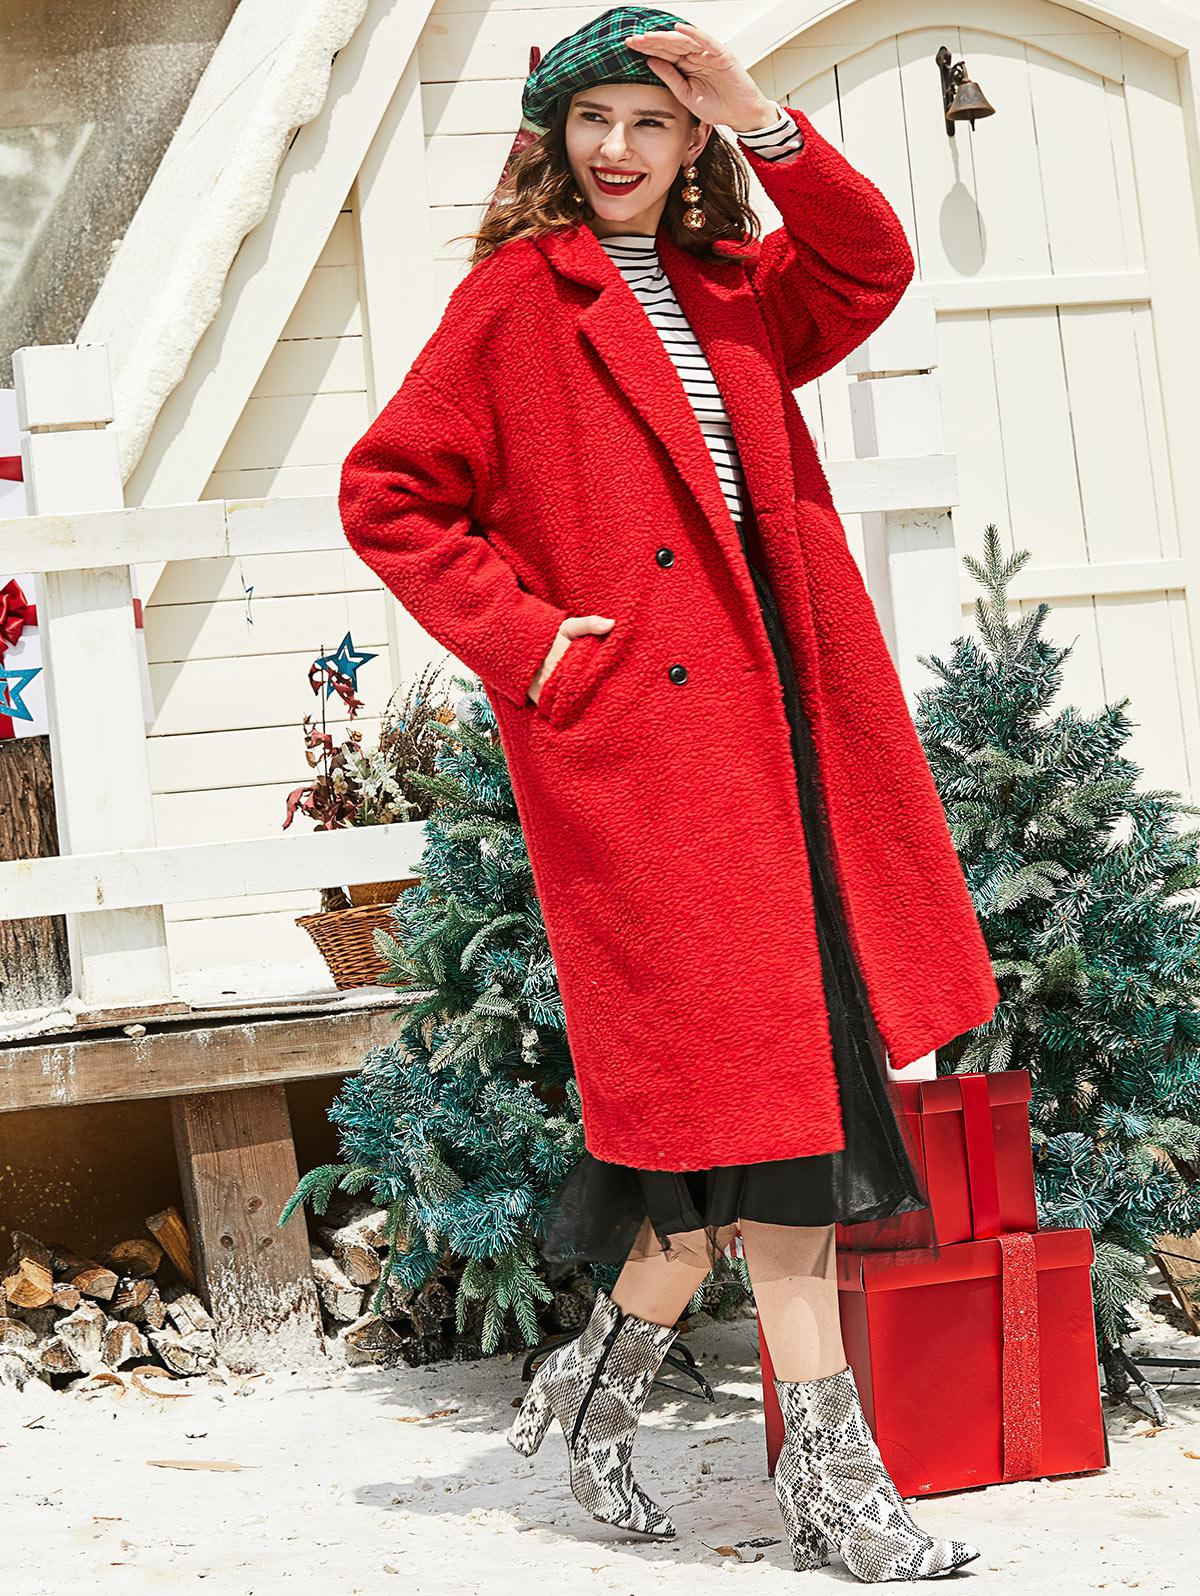 ZAFUL Lapel Christmas Double Breasted Pockets Teddy Coat